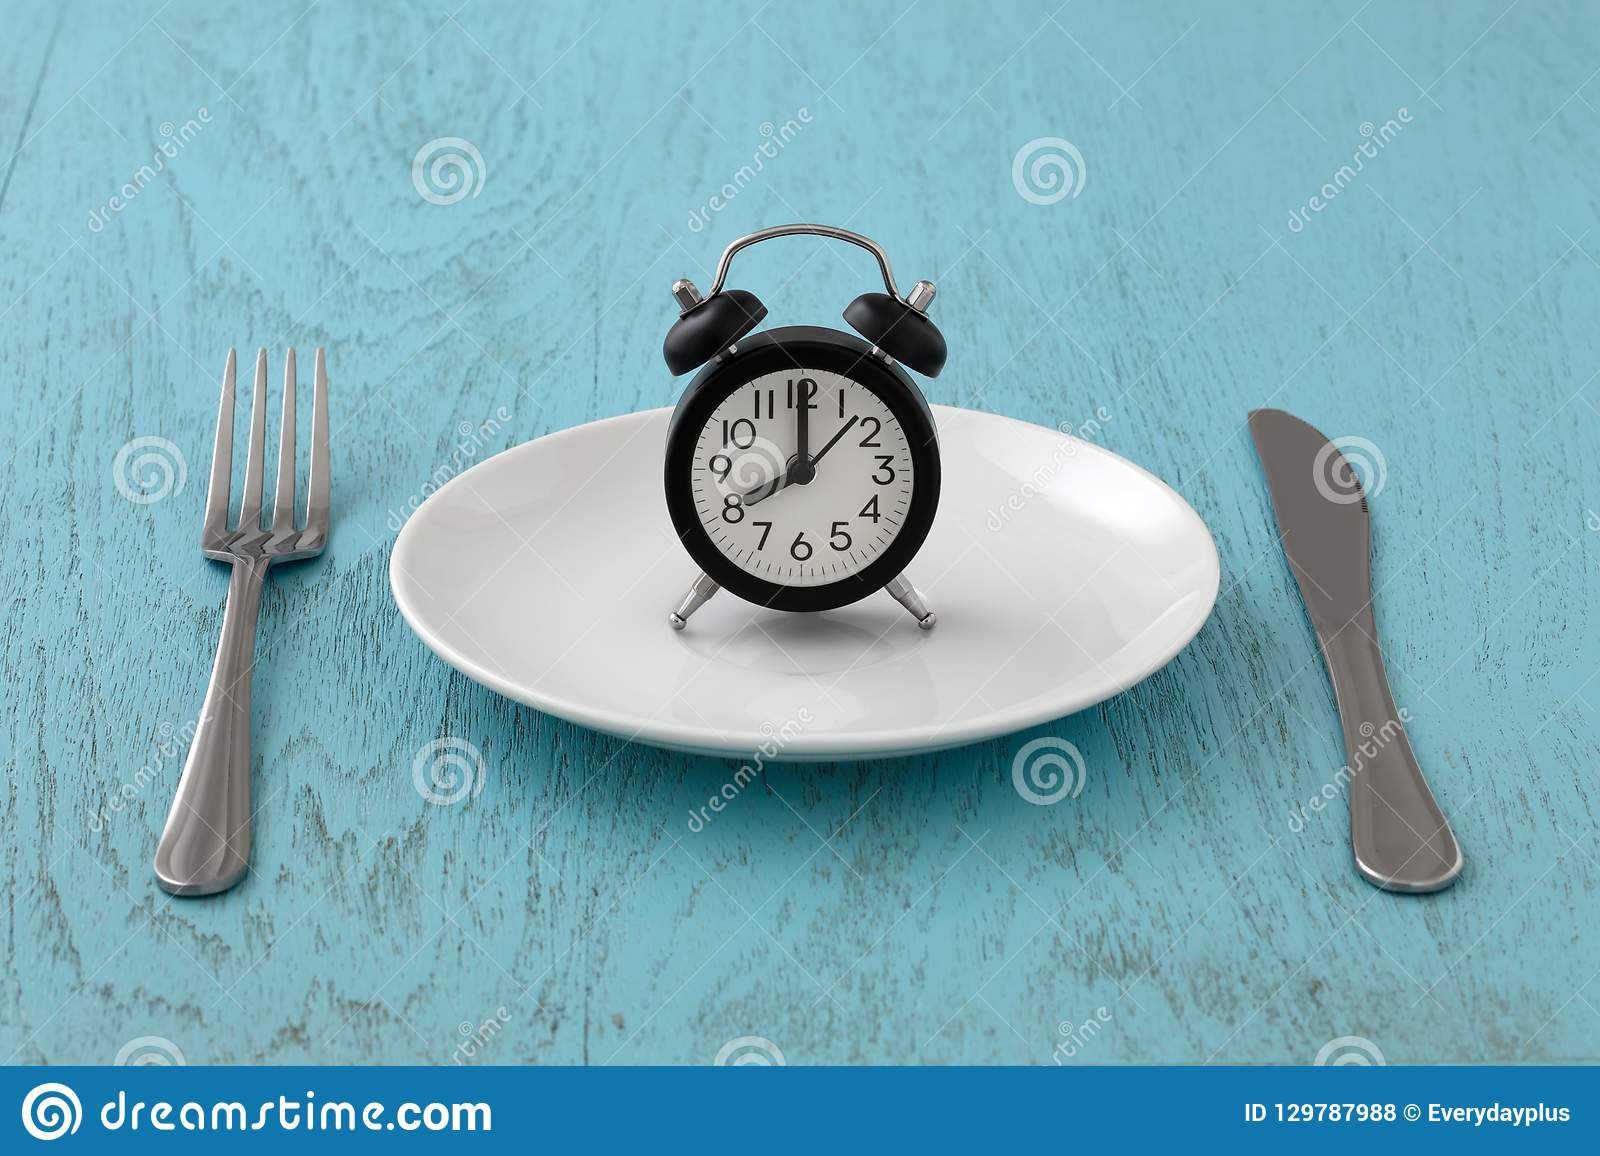 Intermittent Fasting With Clock On White Plate Stock Photo - Image